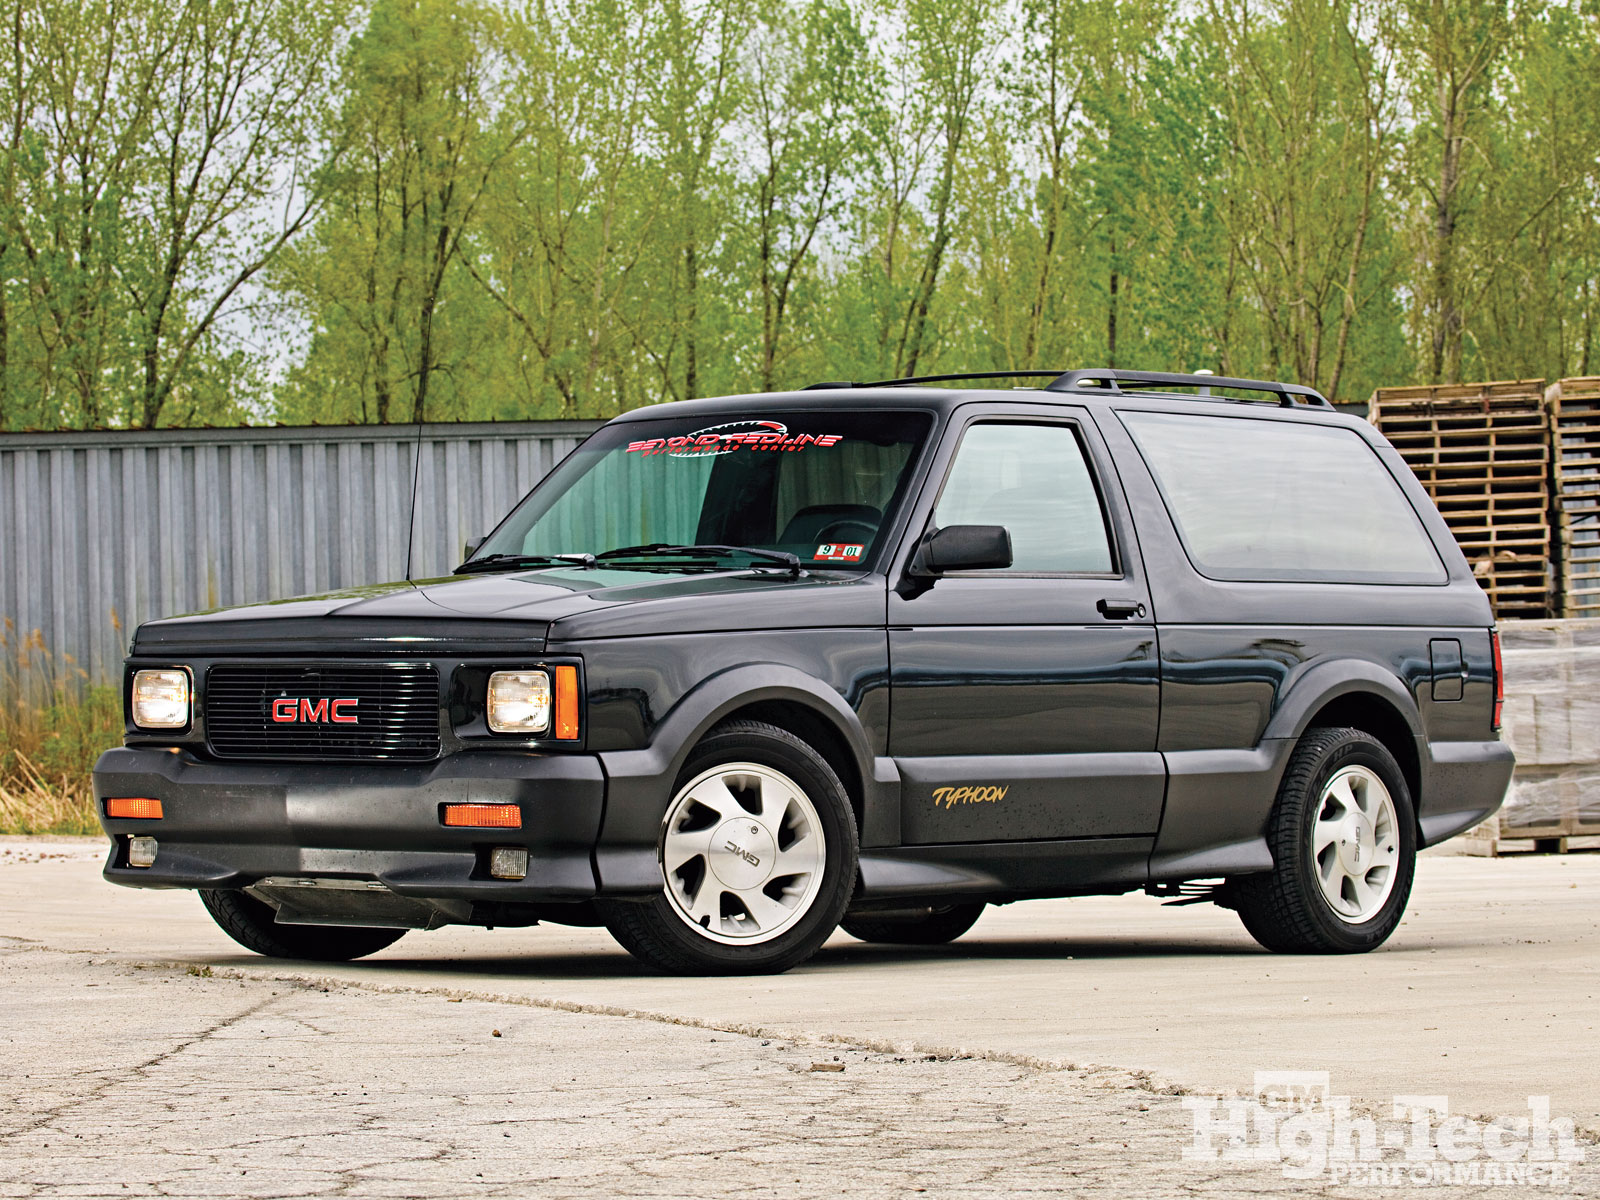 GMC Typhoon SUV 1993